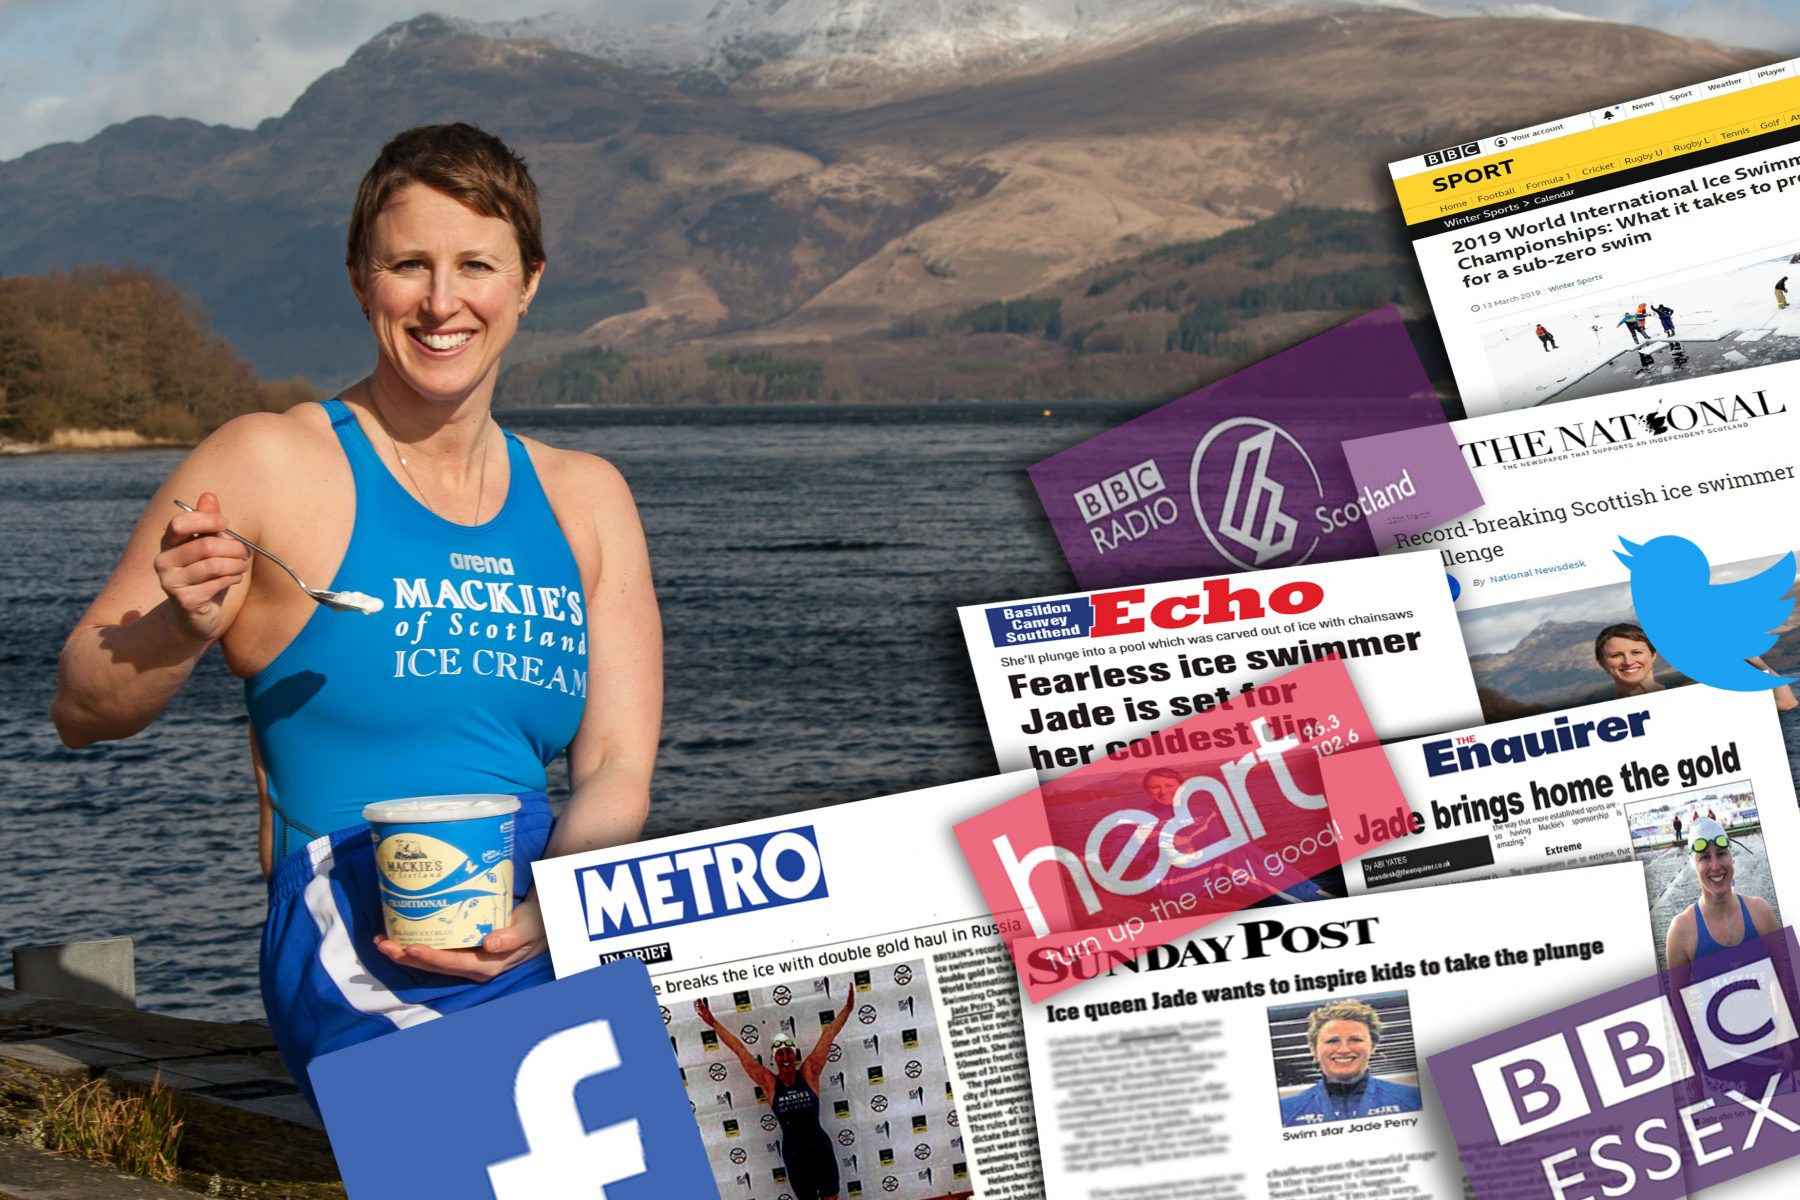 Food and Drink PR success post of Mackie's of Scotland's ice swimmer Jade Perry sponsorship.